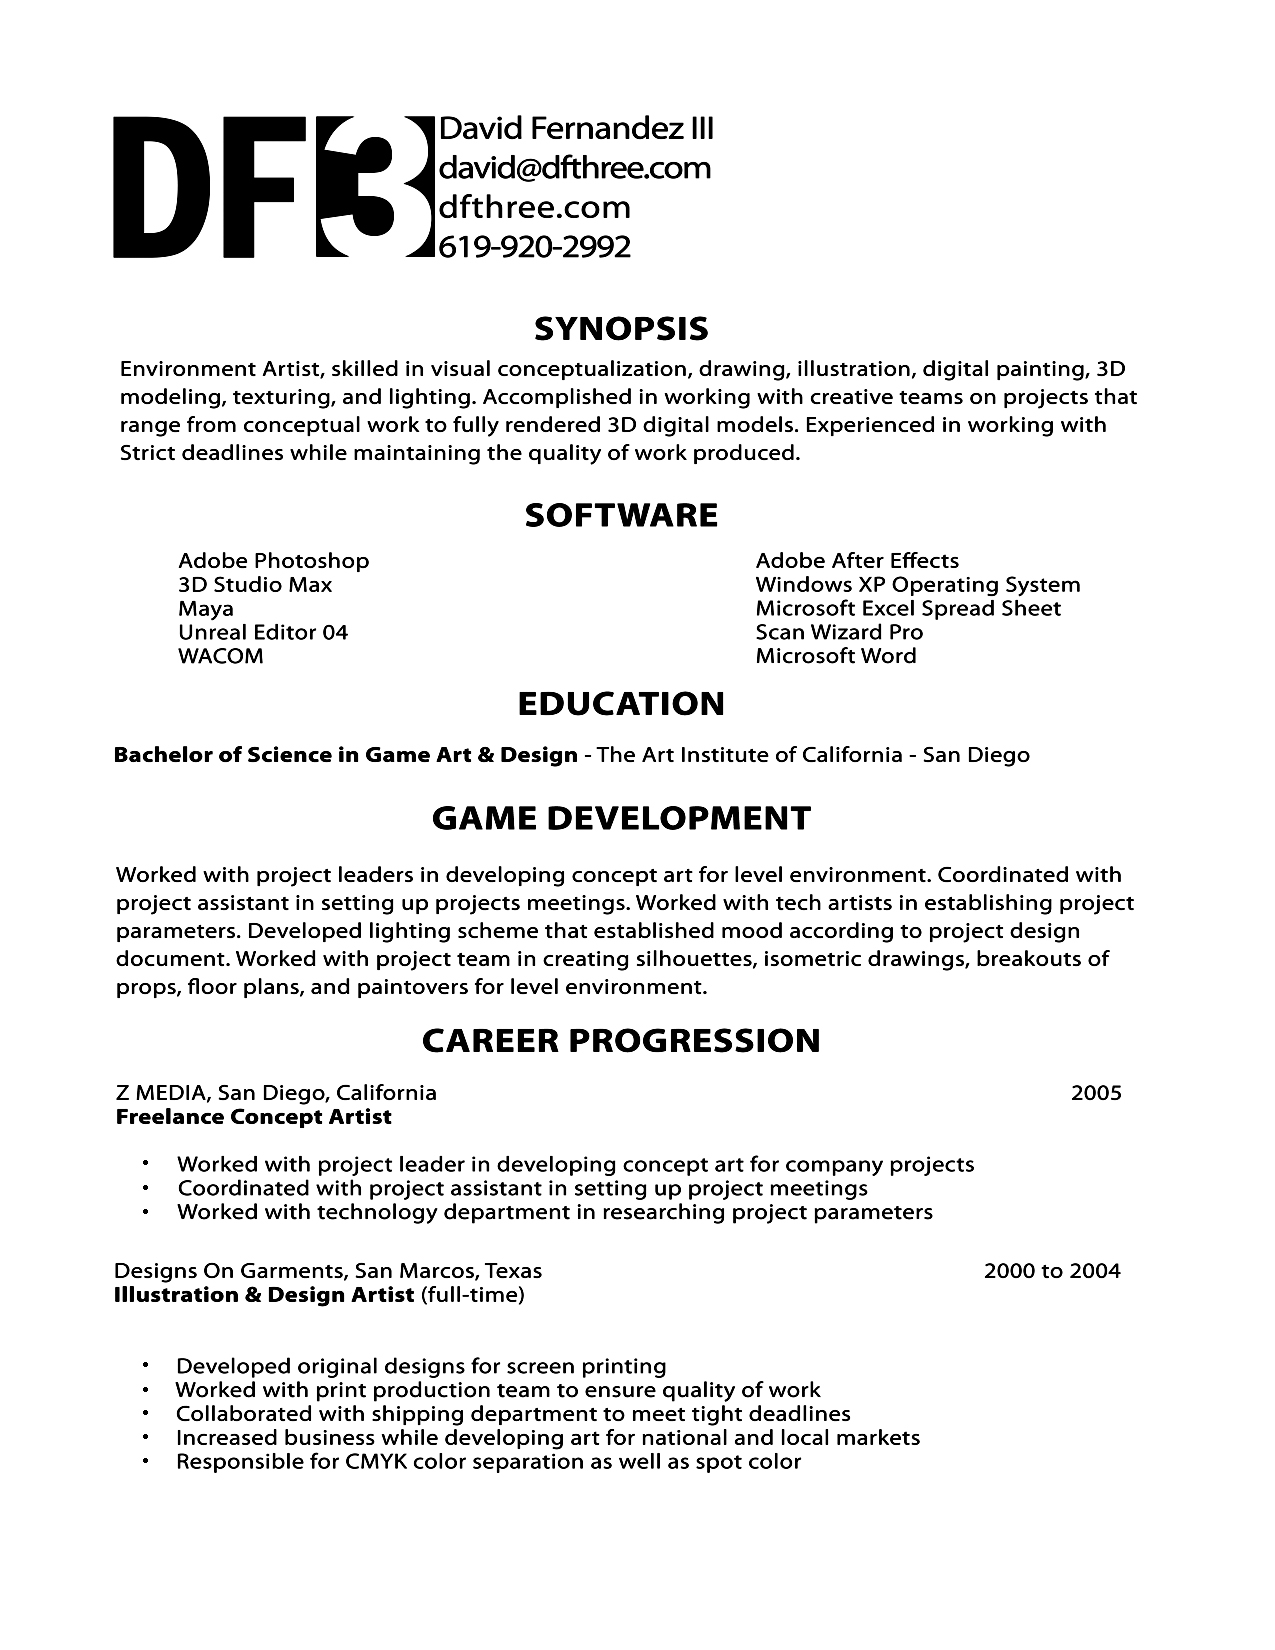 Simple Resume Design Ideas That Work